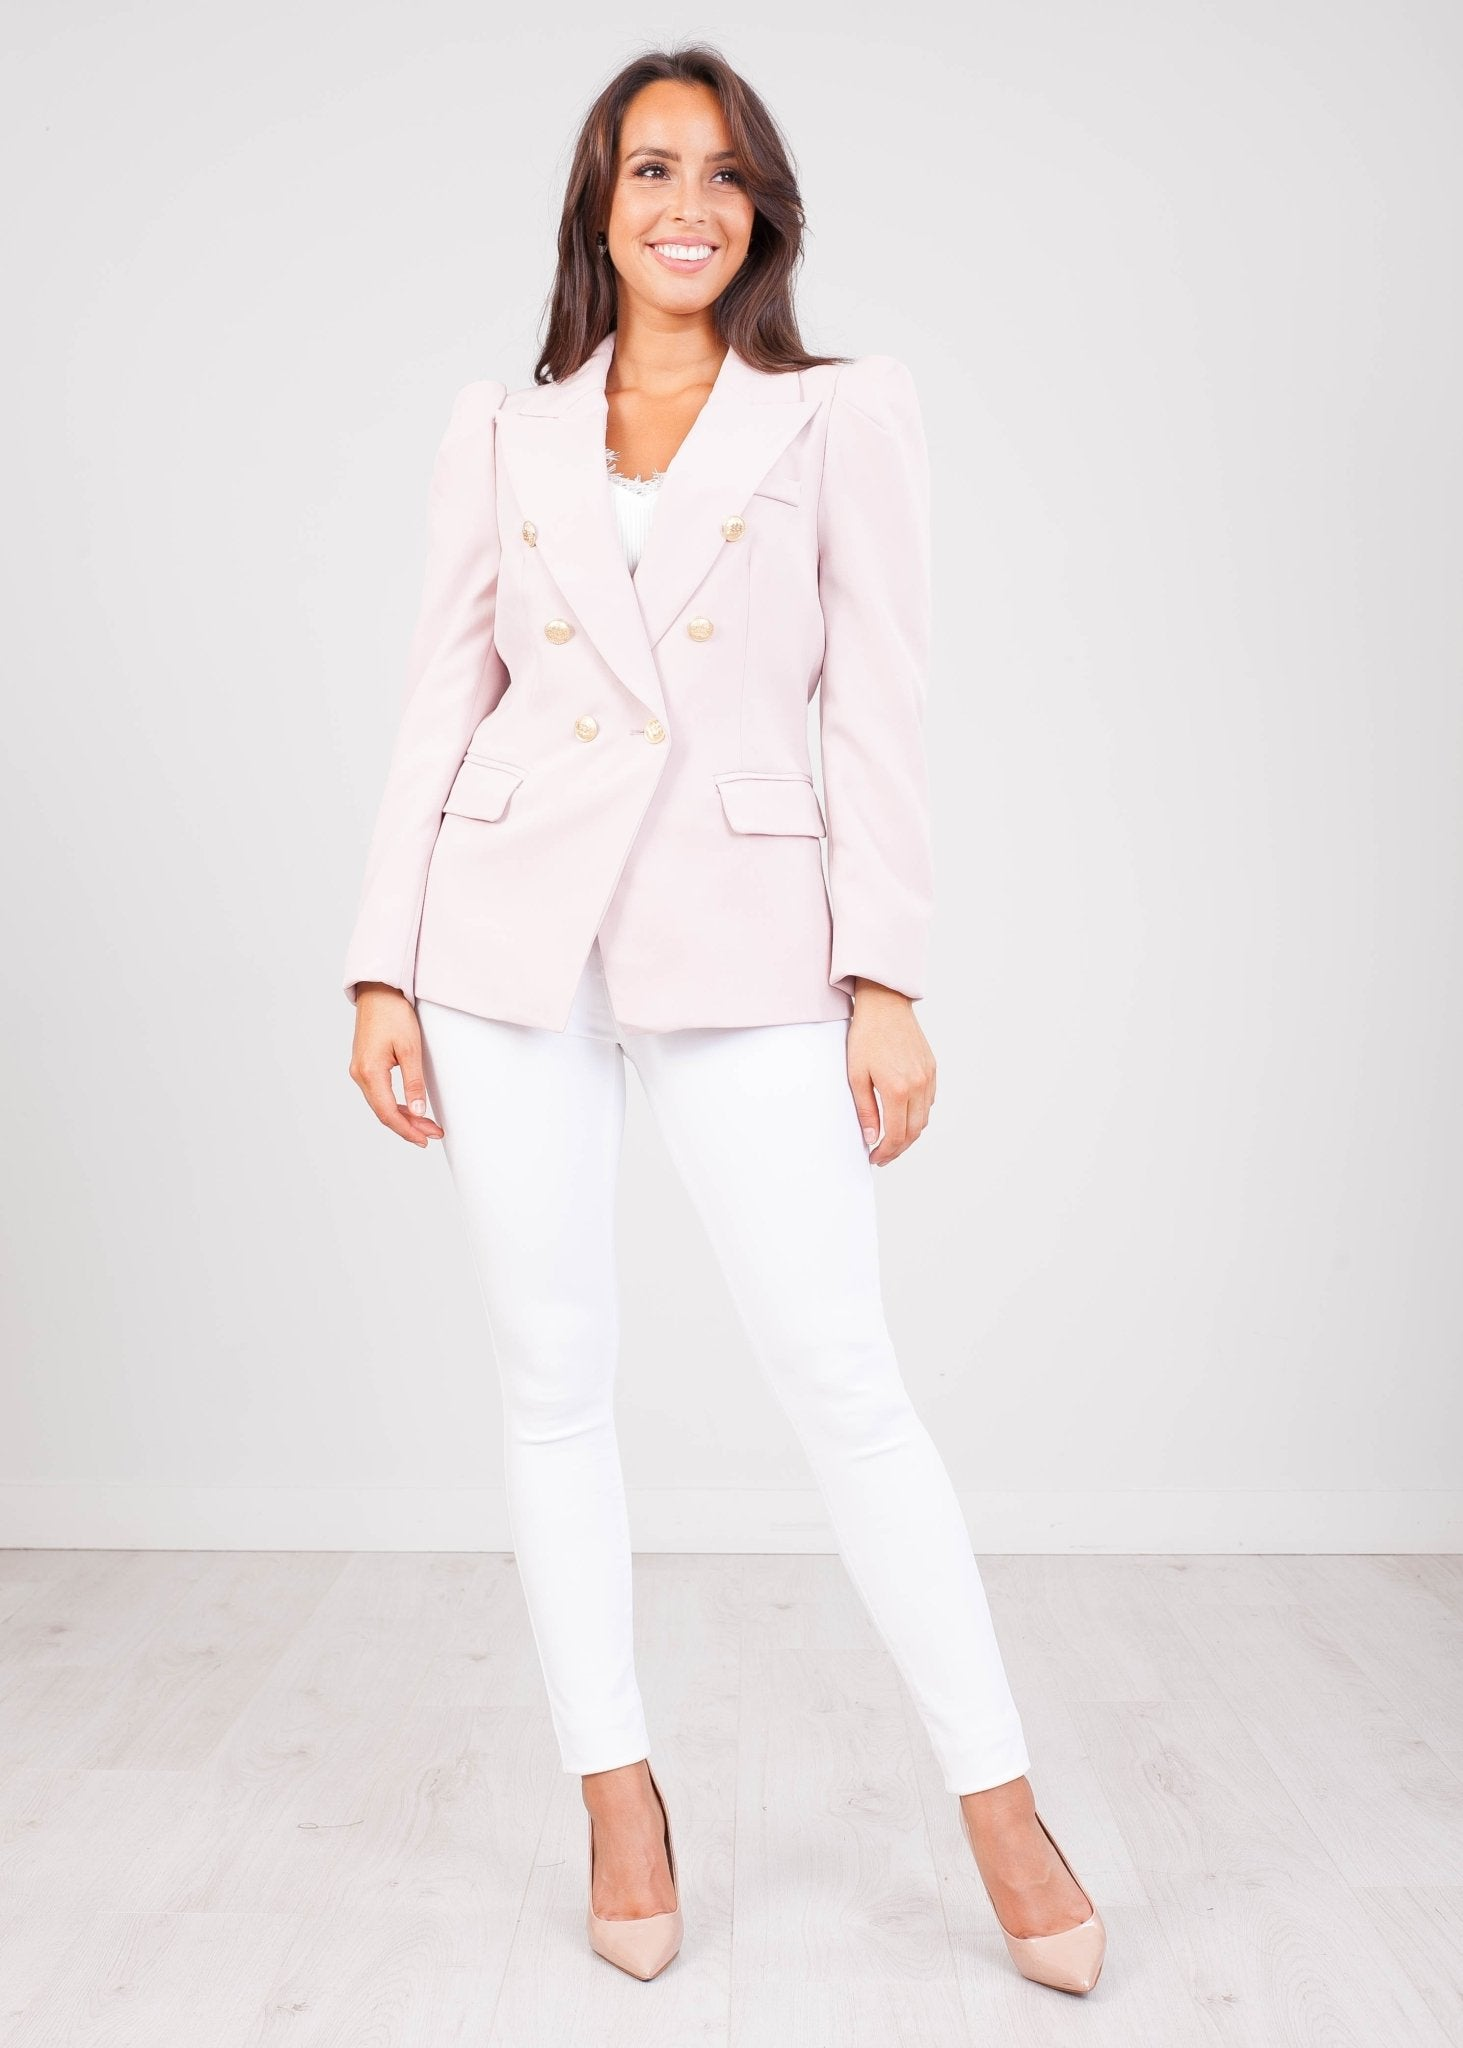 Arabella Dusky Pink Blazer - The Walk in Wardrobe